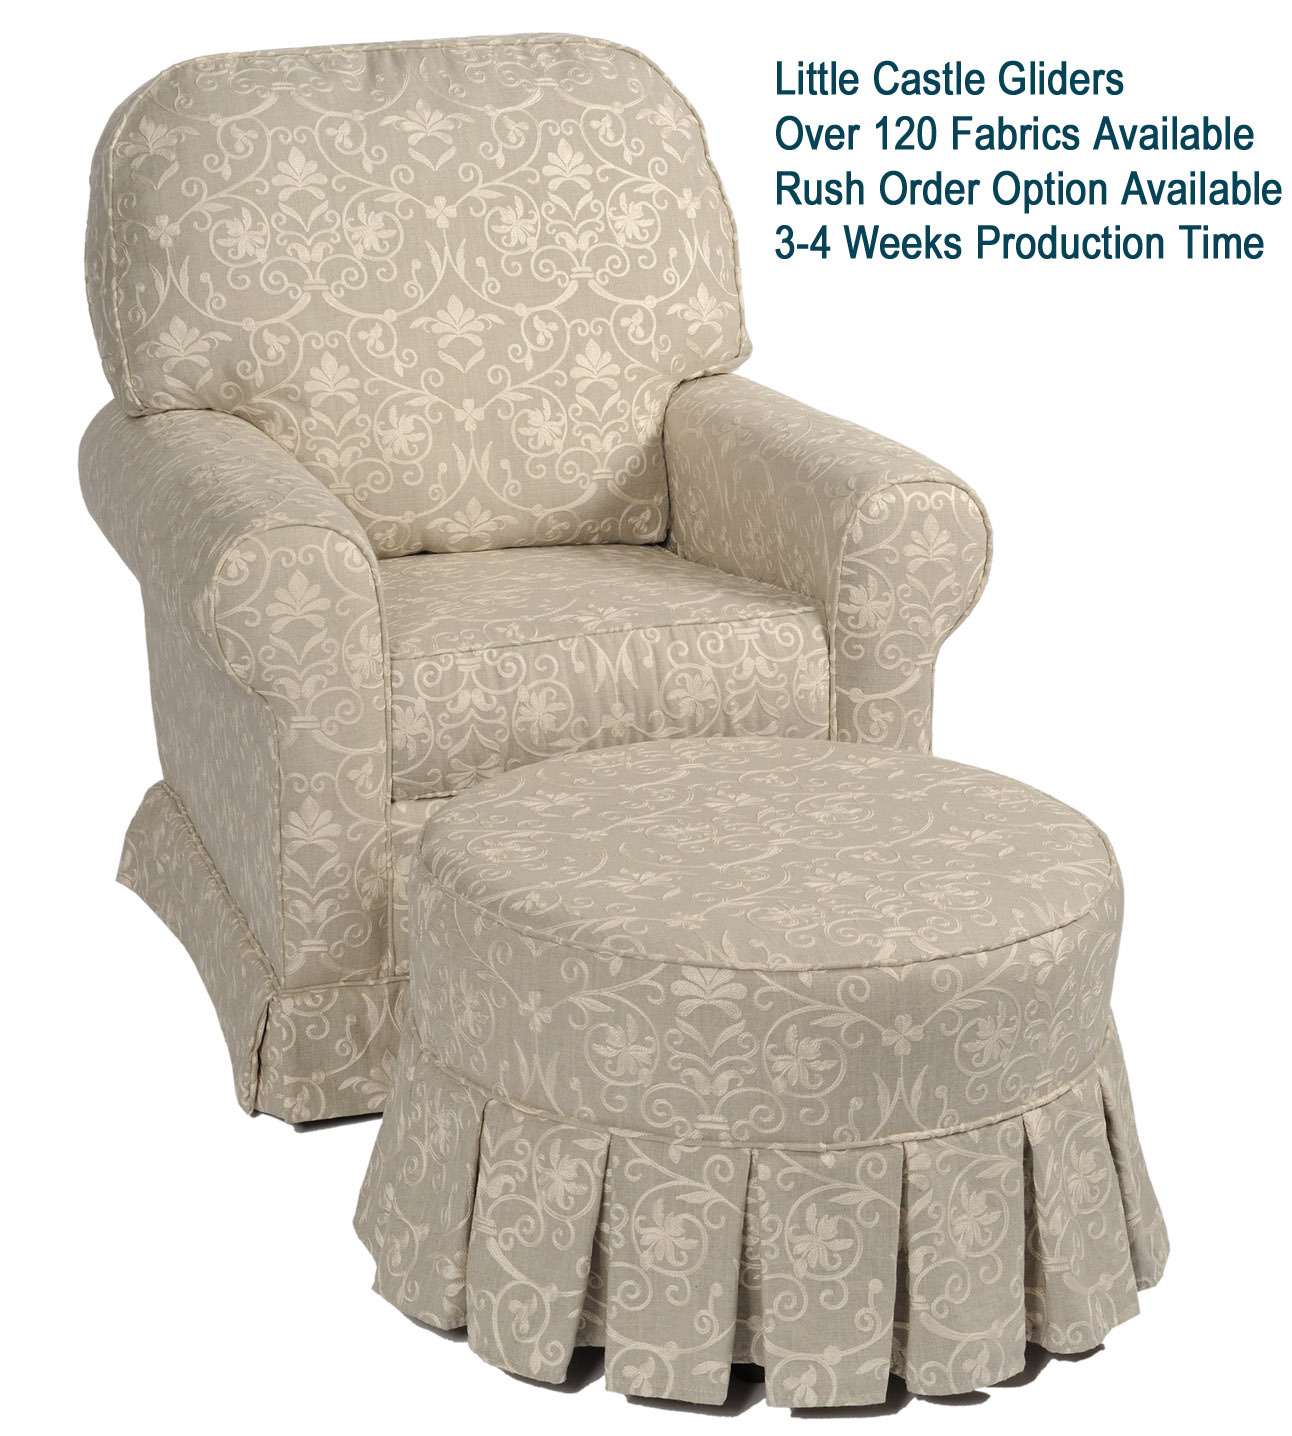 little castle chair and half glider loveseat lawn royal bambino | shop online for nursery bedding, gliders baby gifts